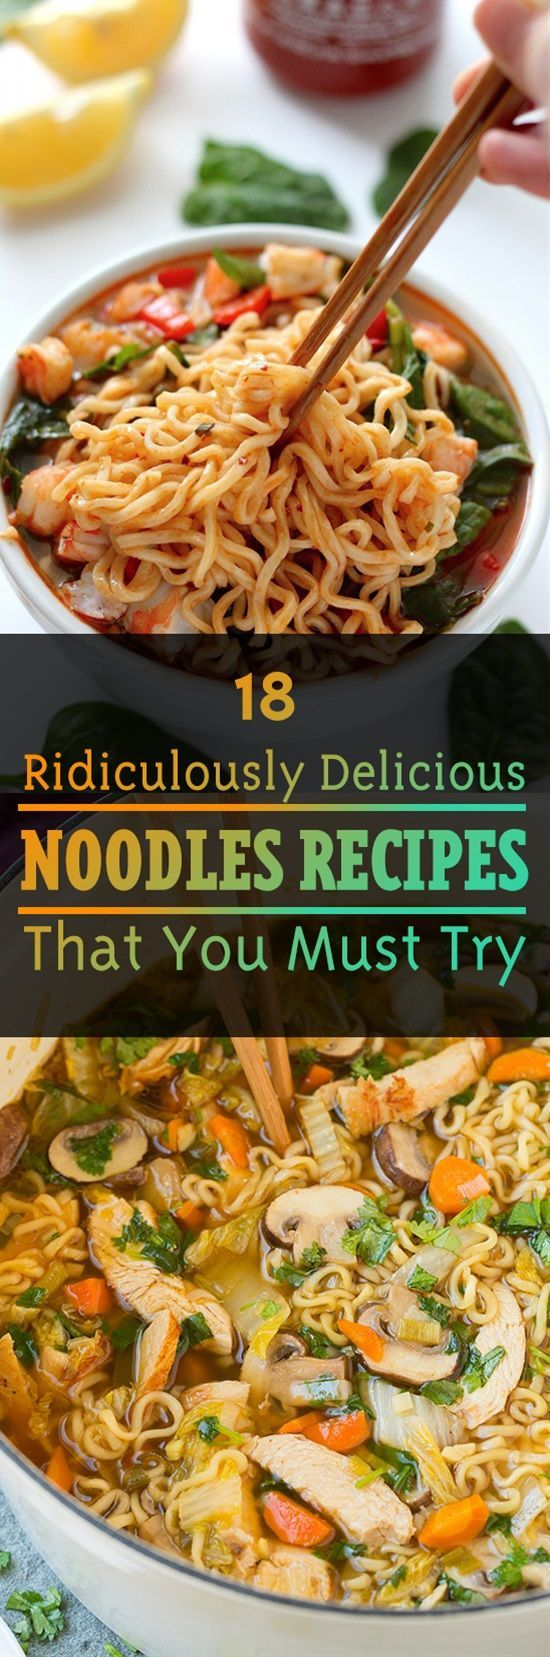 We all love noodles don't we? But packaged flavors that come with instant noodles don't even compare to what you can achieve at home. Here is our compilation of the best noodles recipes you can make that taste a million times better than instant noodles.